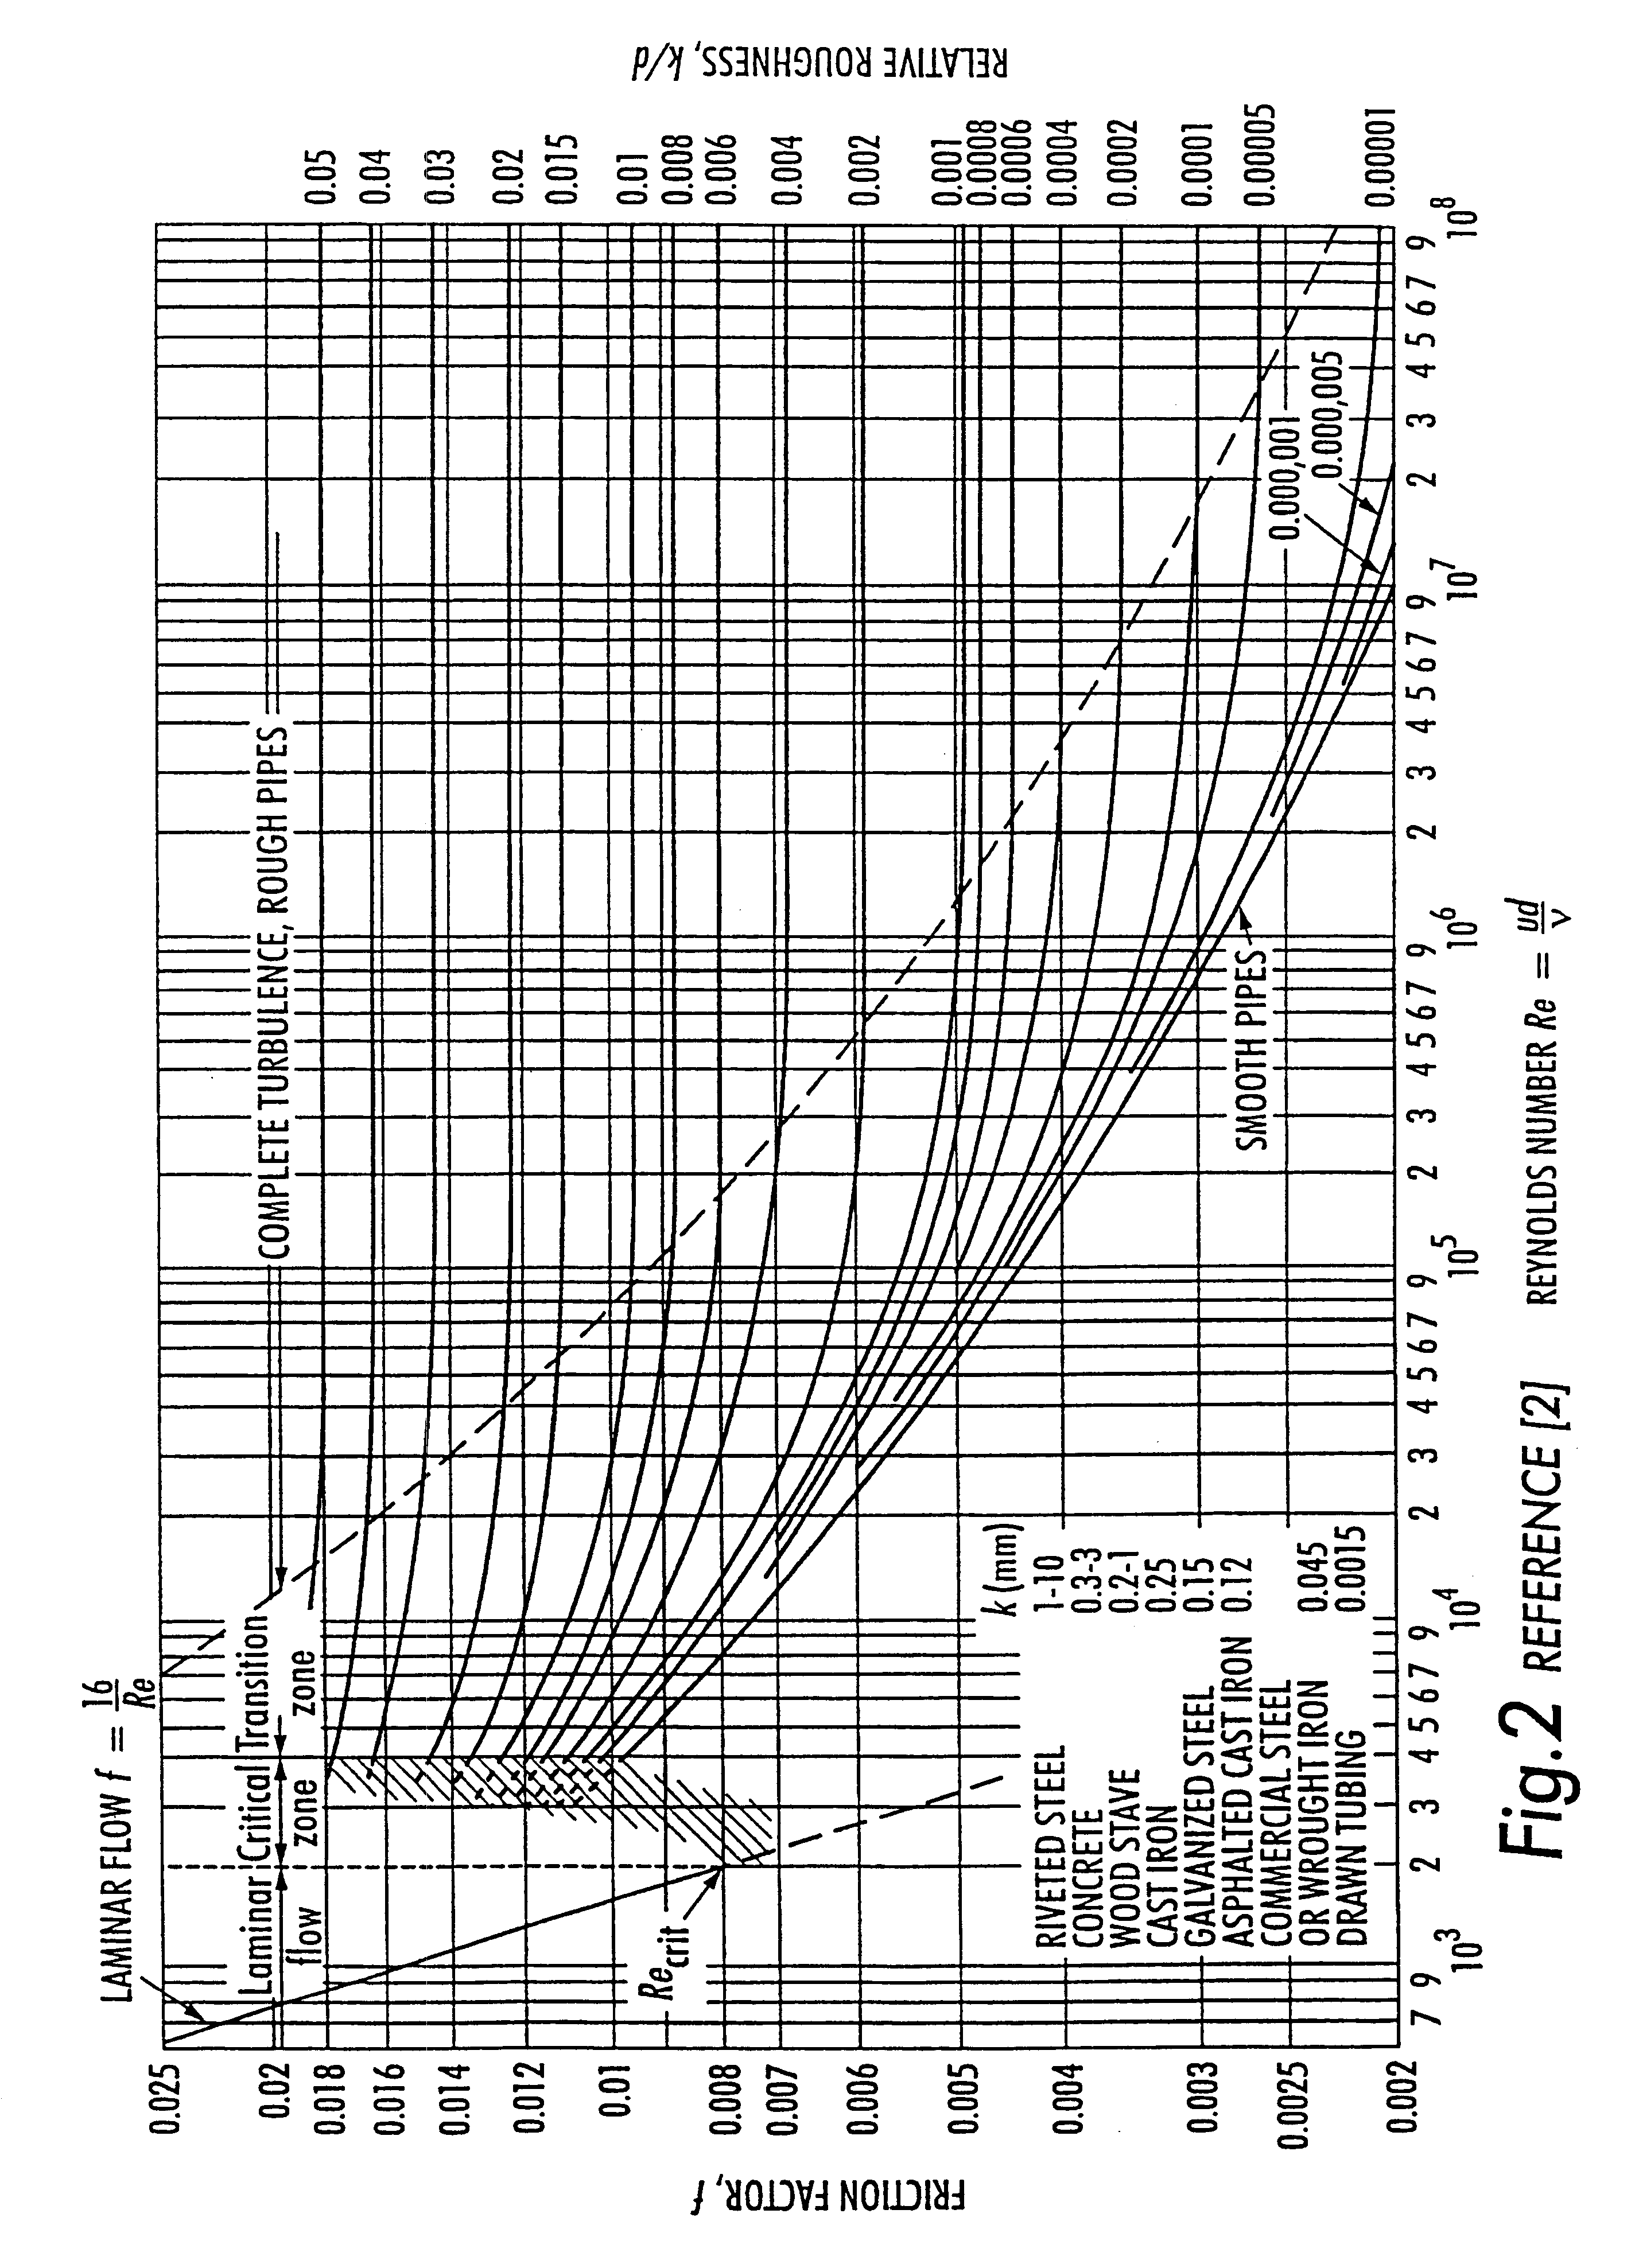 DC Analog Ammeter   0 to 100A with Shunt furthermore Ongrid Solar System in addition Over Current Cut Off Power Supply Using Arduino besides How To Reduce System Cost In A Three Phase Igbt Based Inverter Design together with Single Phase Power Factor Correction Based On Averaged Current Mode Controlled Boost Converter. on dc current diagram